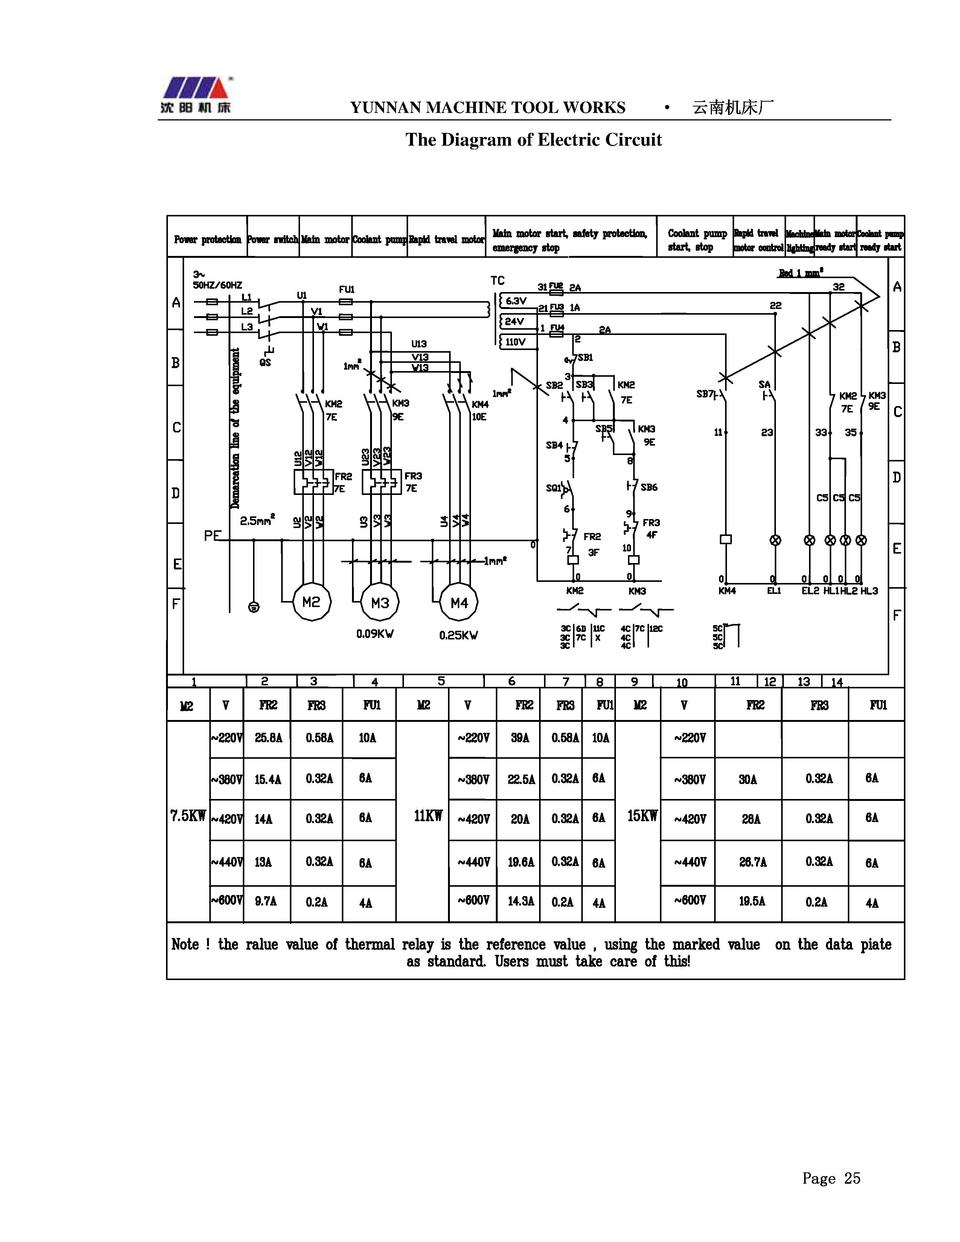 hight resolution of yunnan machine tool works the diagram of electric